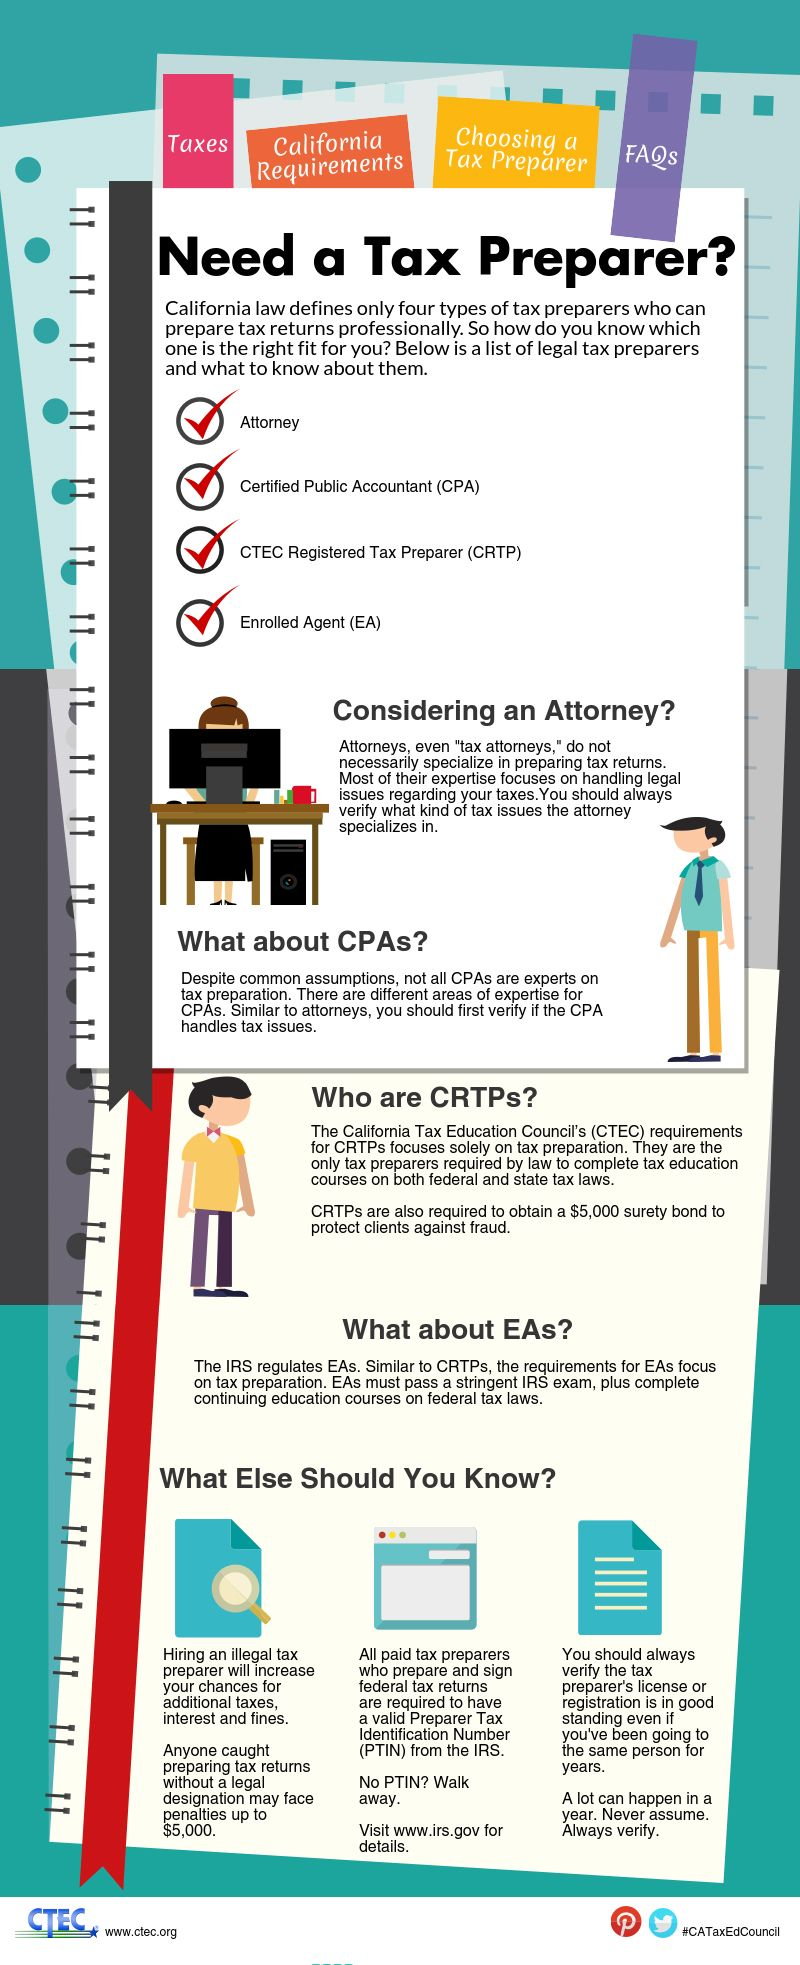 Pin by California Tax Education Council on News Releases/Media